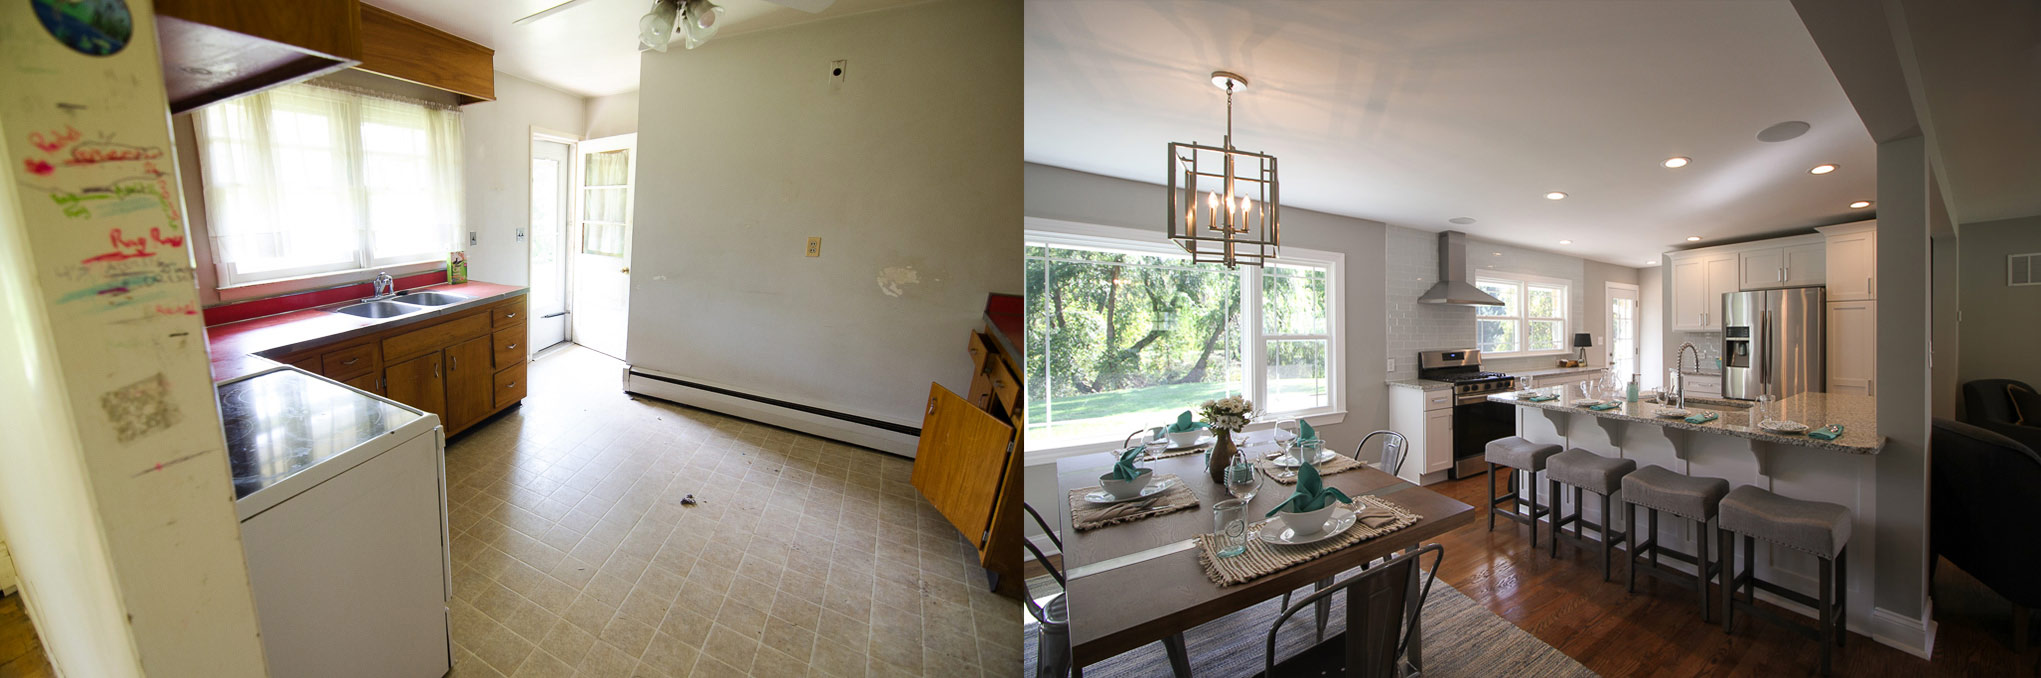 Kitchen and dining area before and after images